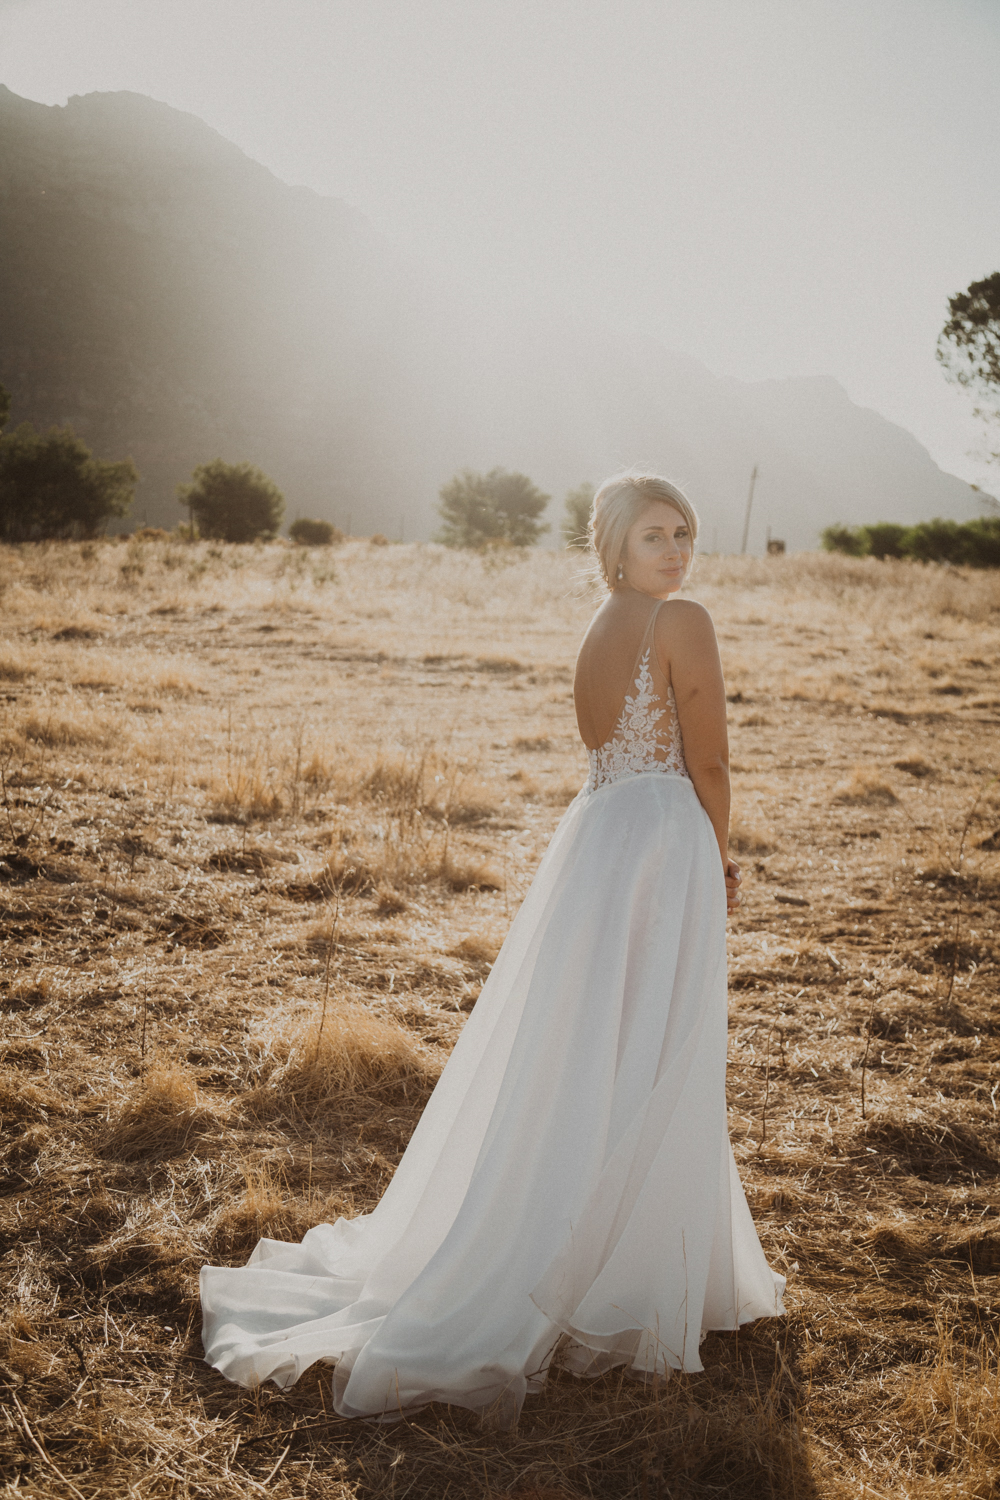 Elegant Country Wedding Cape Town - Bianca Asher Photography-62.jpg